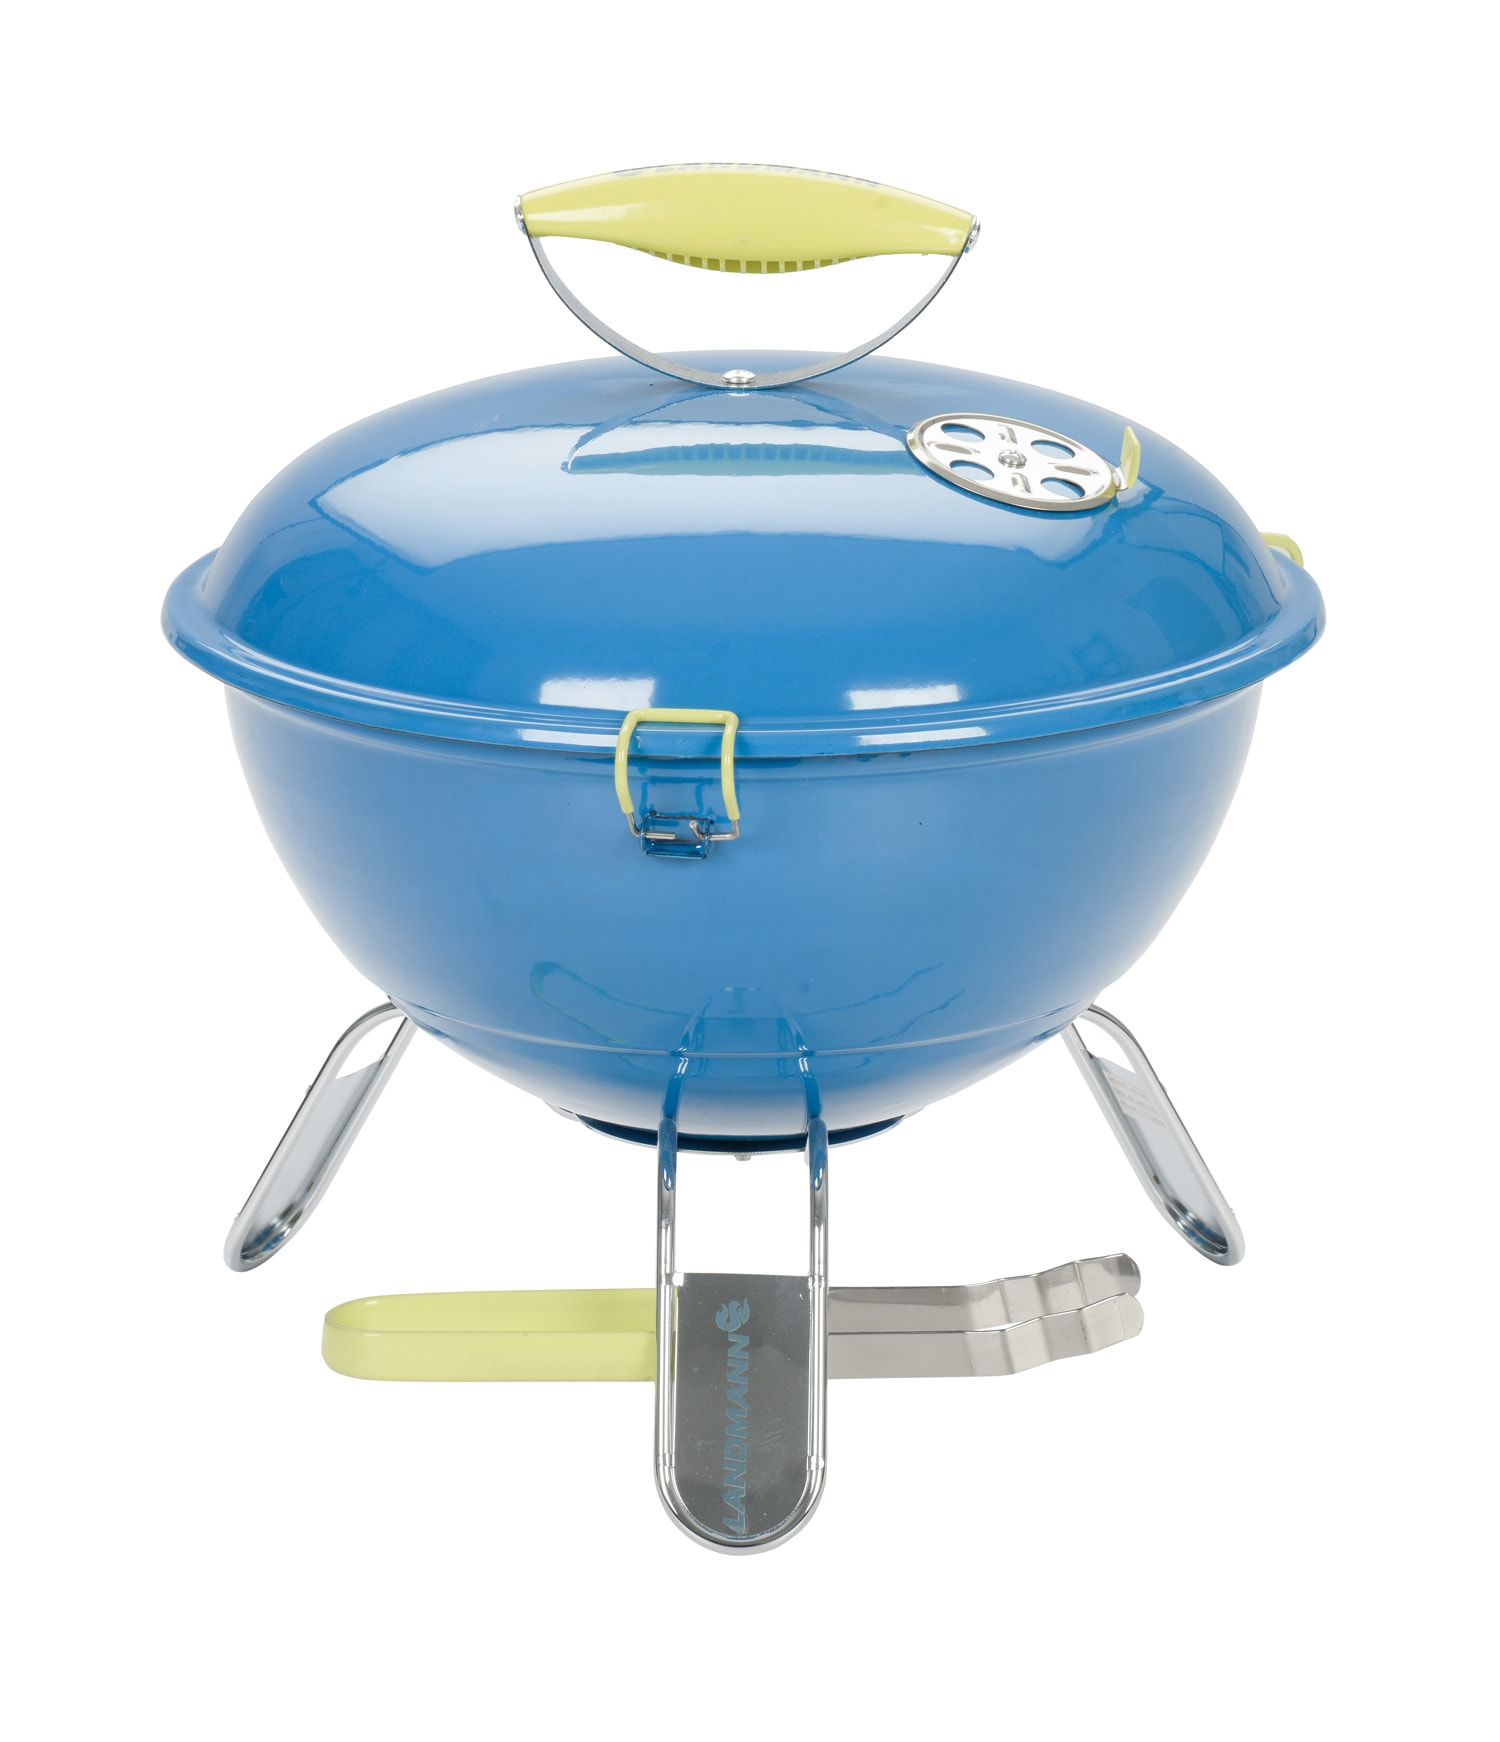 Landmann 31381 Piccolino Azure Blue Portable Charcoal BBQ